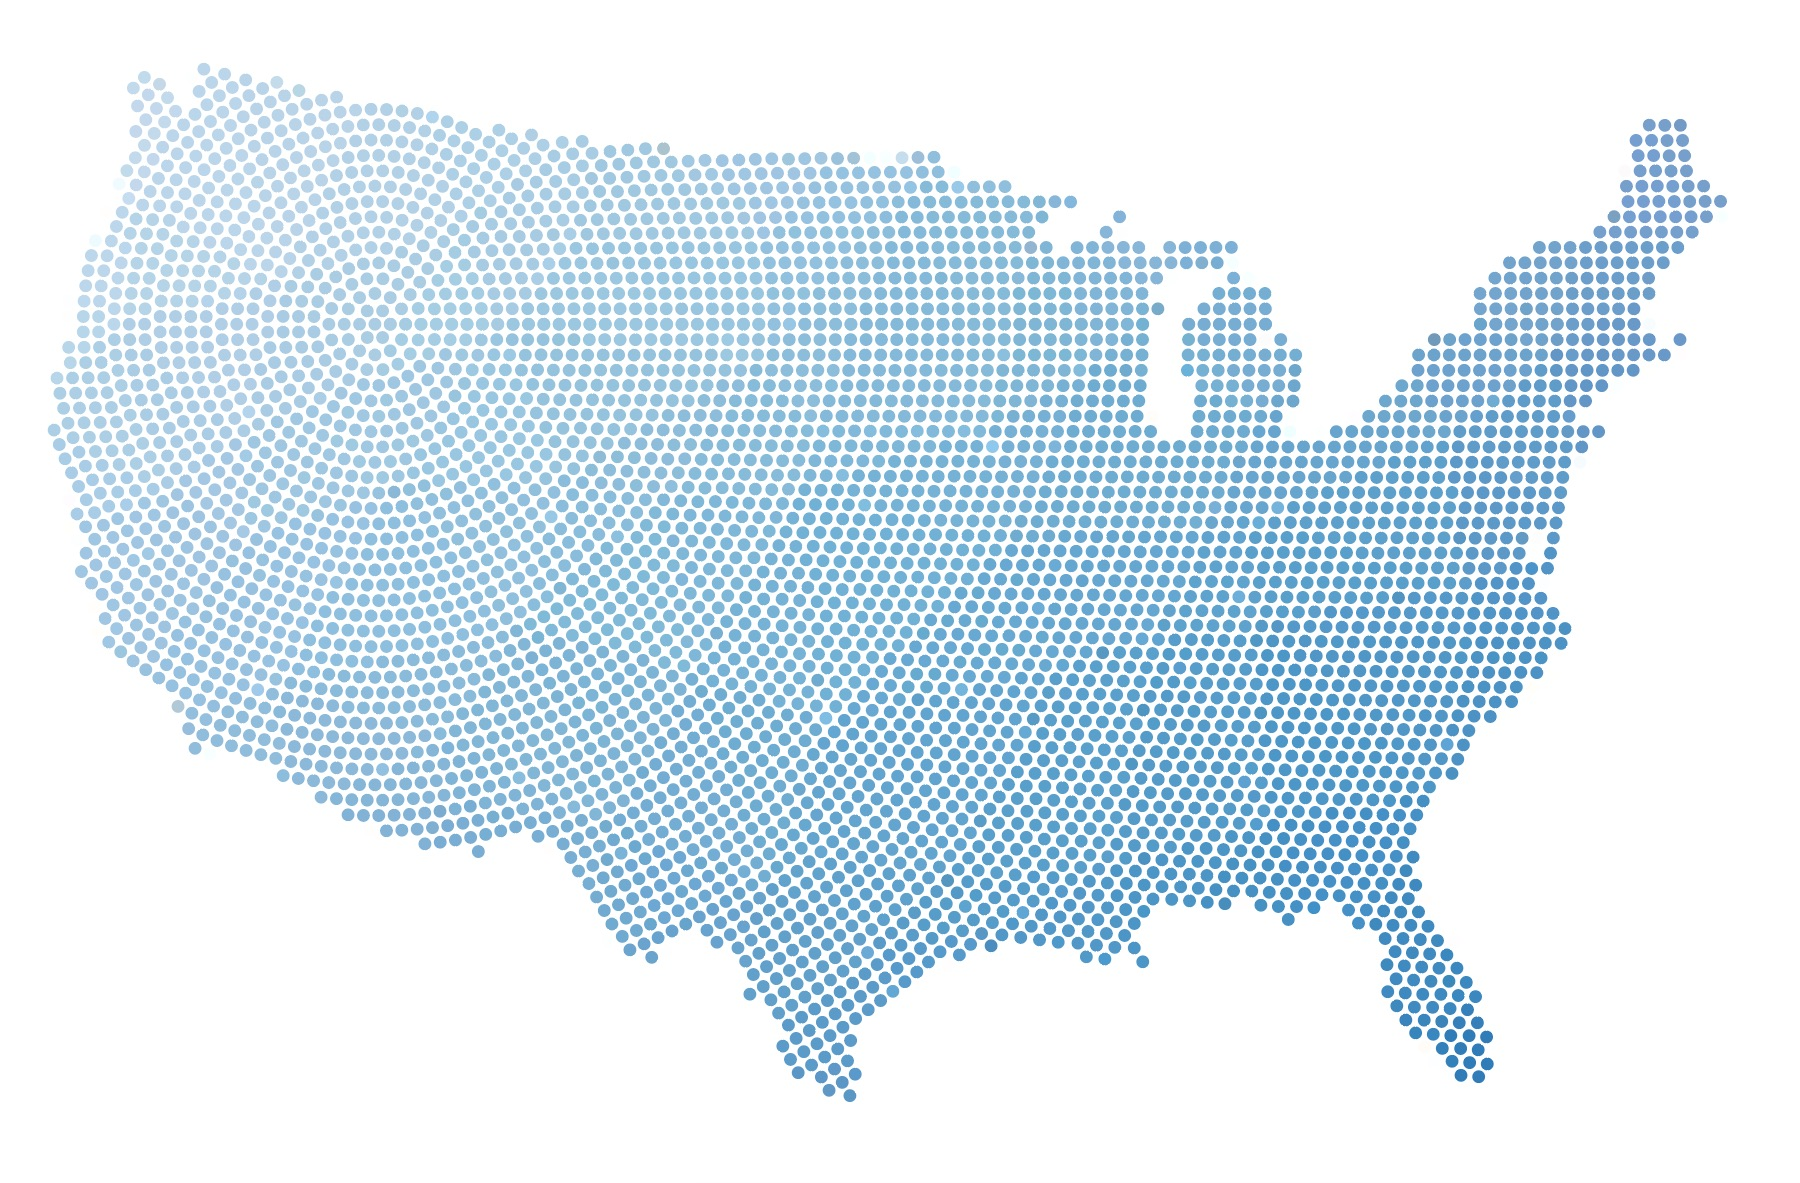 usa_dot_map